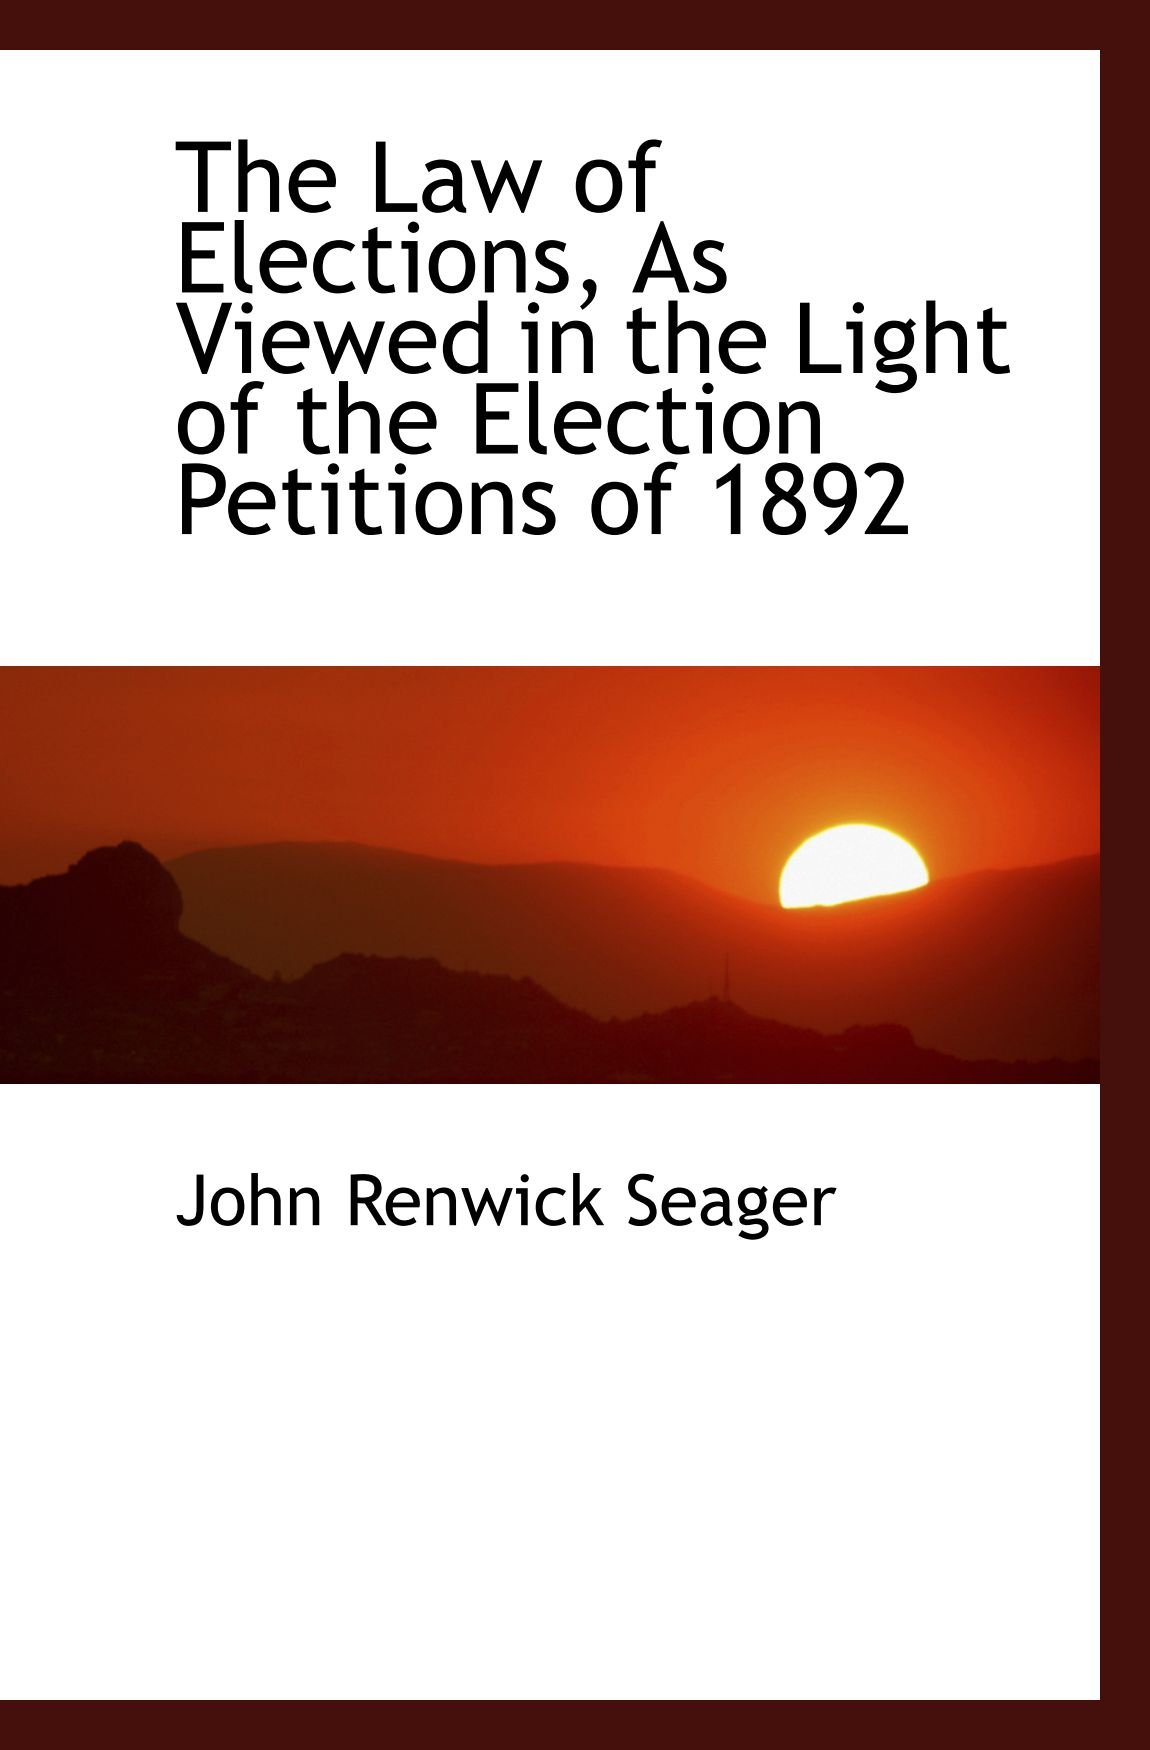 The Law of Elections, As Viewed in the Light of the Election Petitions of 1892 ebook